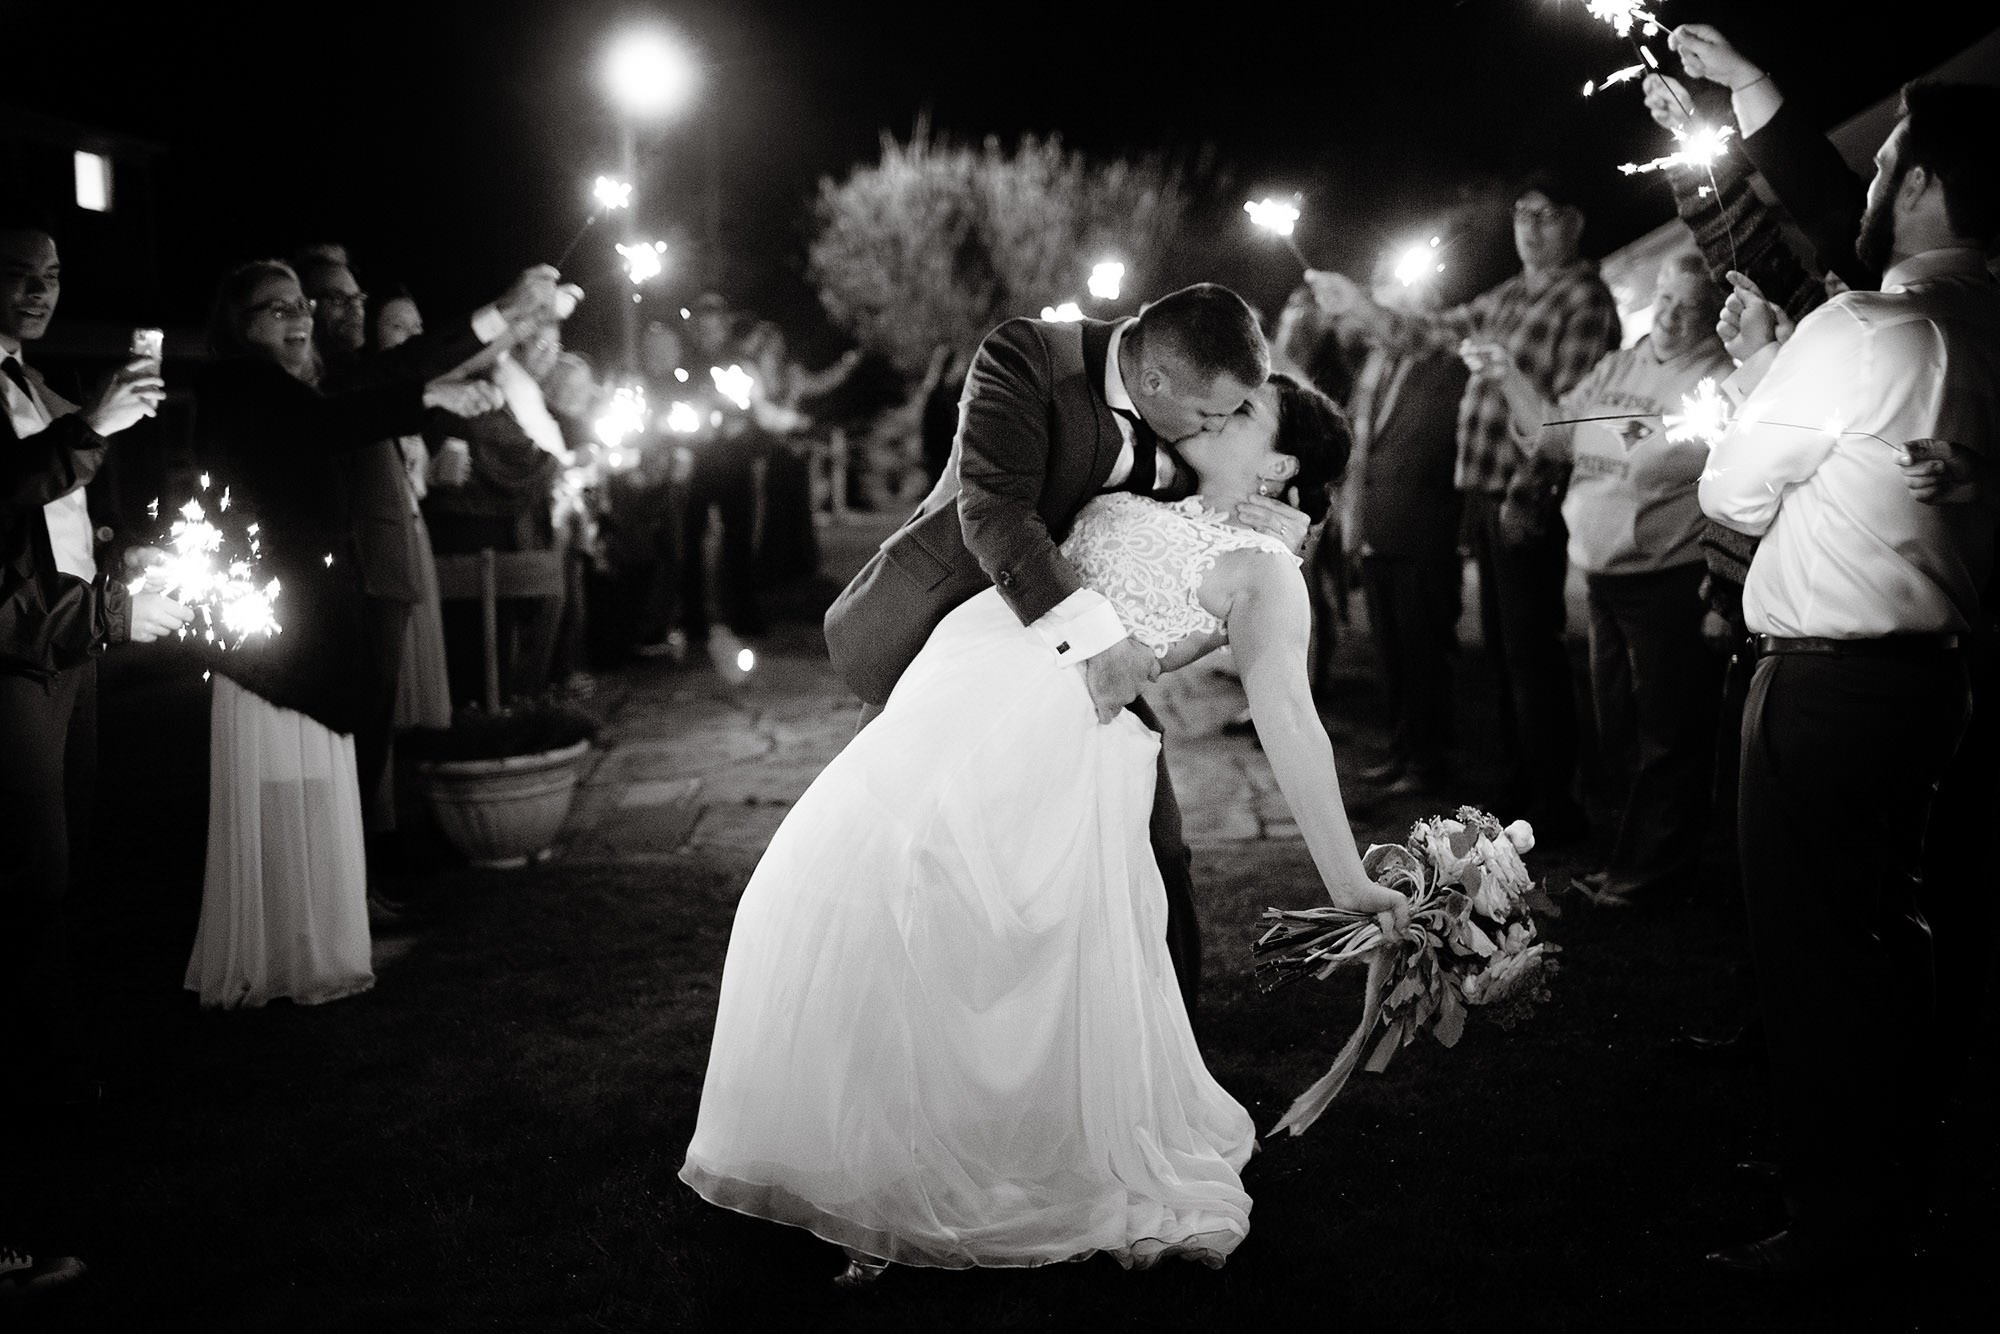 The couple kisses during a sparkler sendoff following their wedding reception at Pelham House Resort.